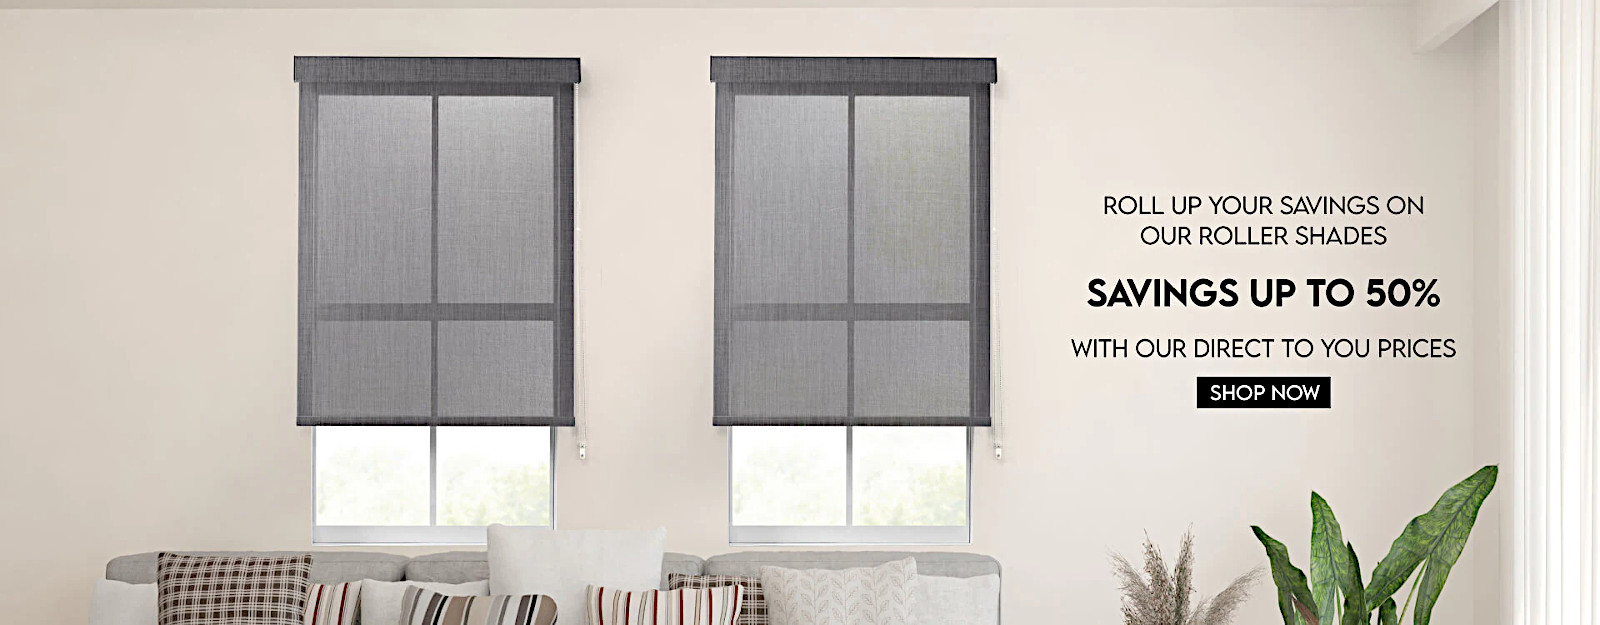 Special roller shades